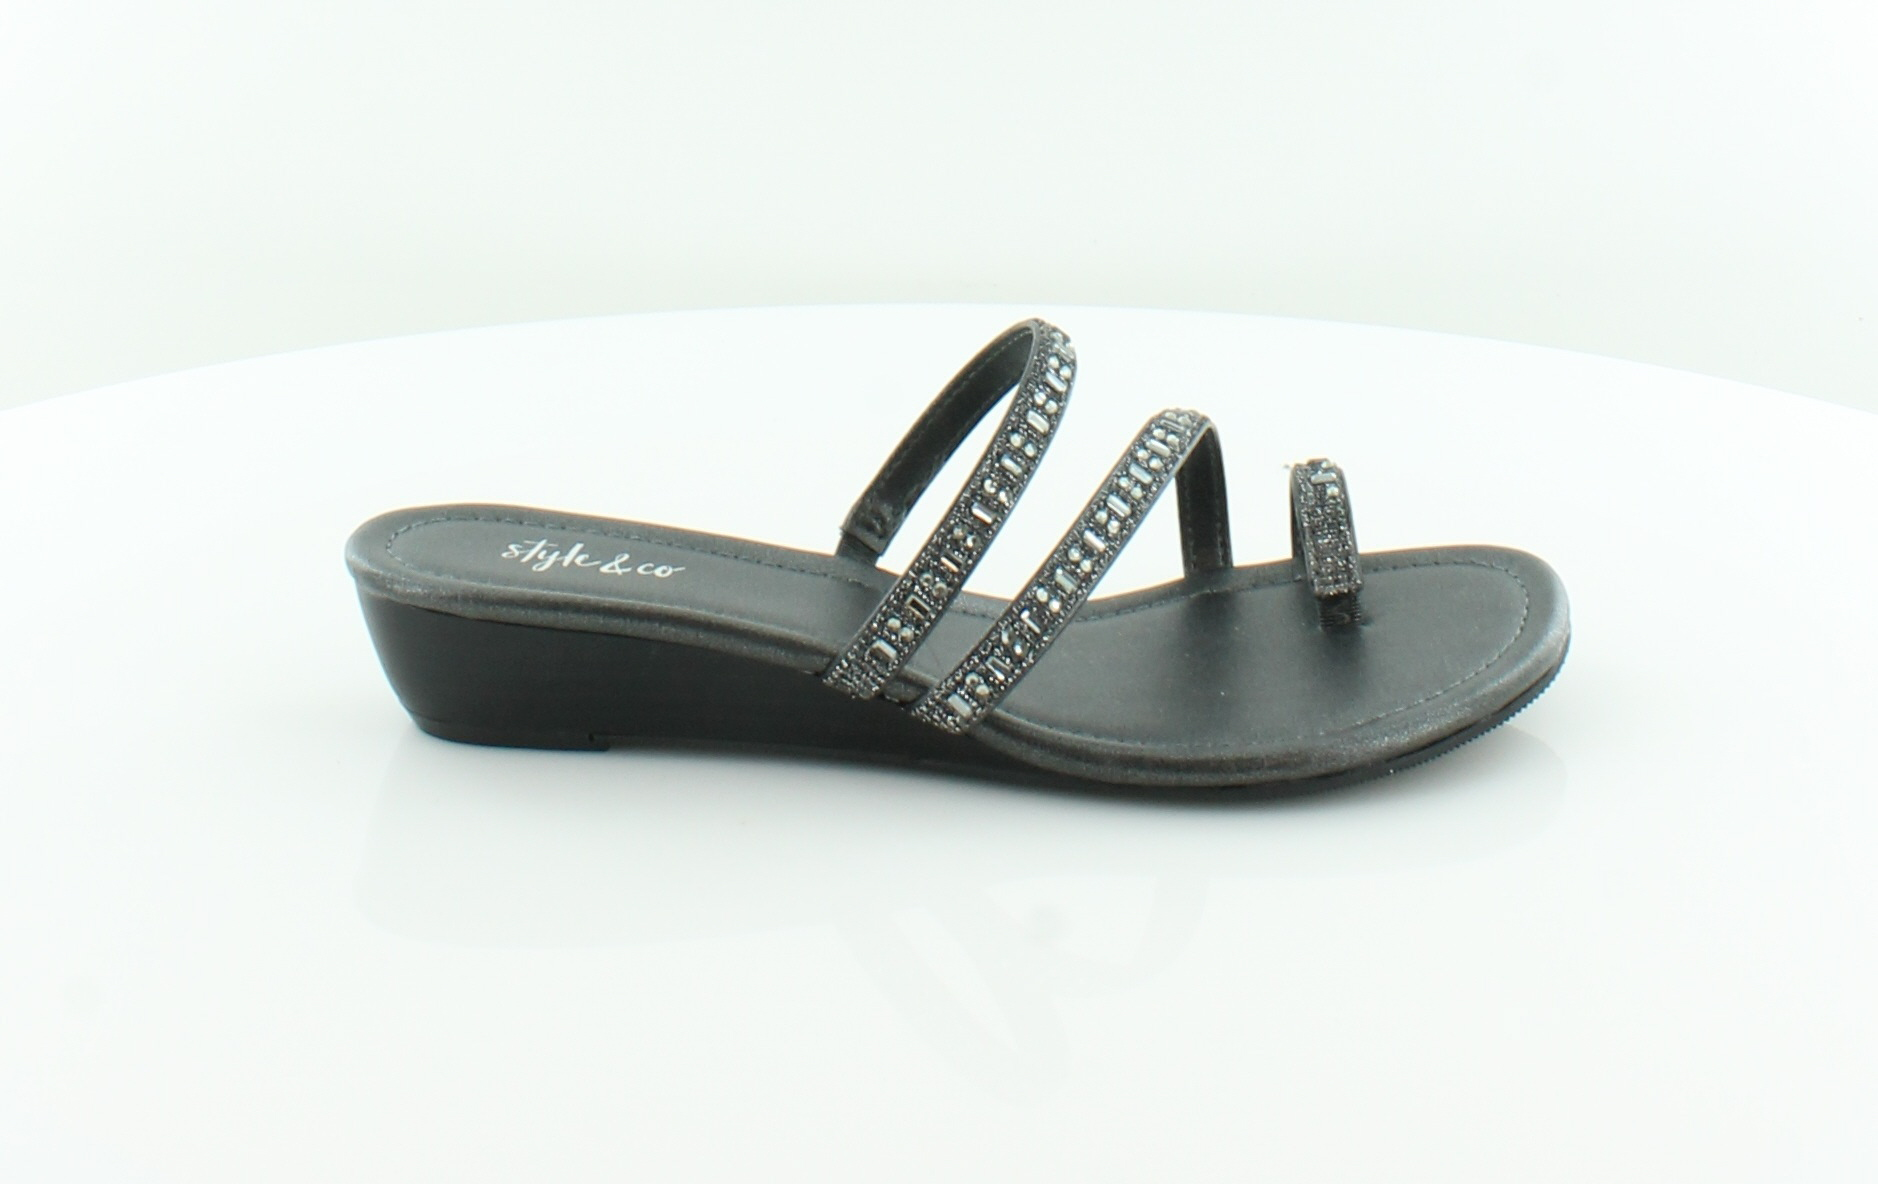 Style Sandals & Co. Hayleigh Women's Sandals Style Slate 1cfac2